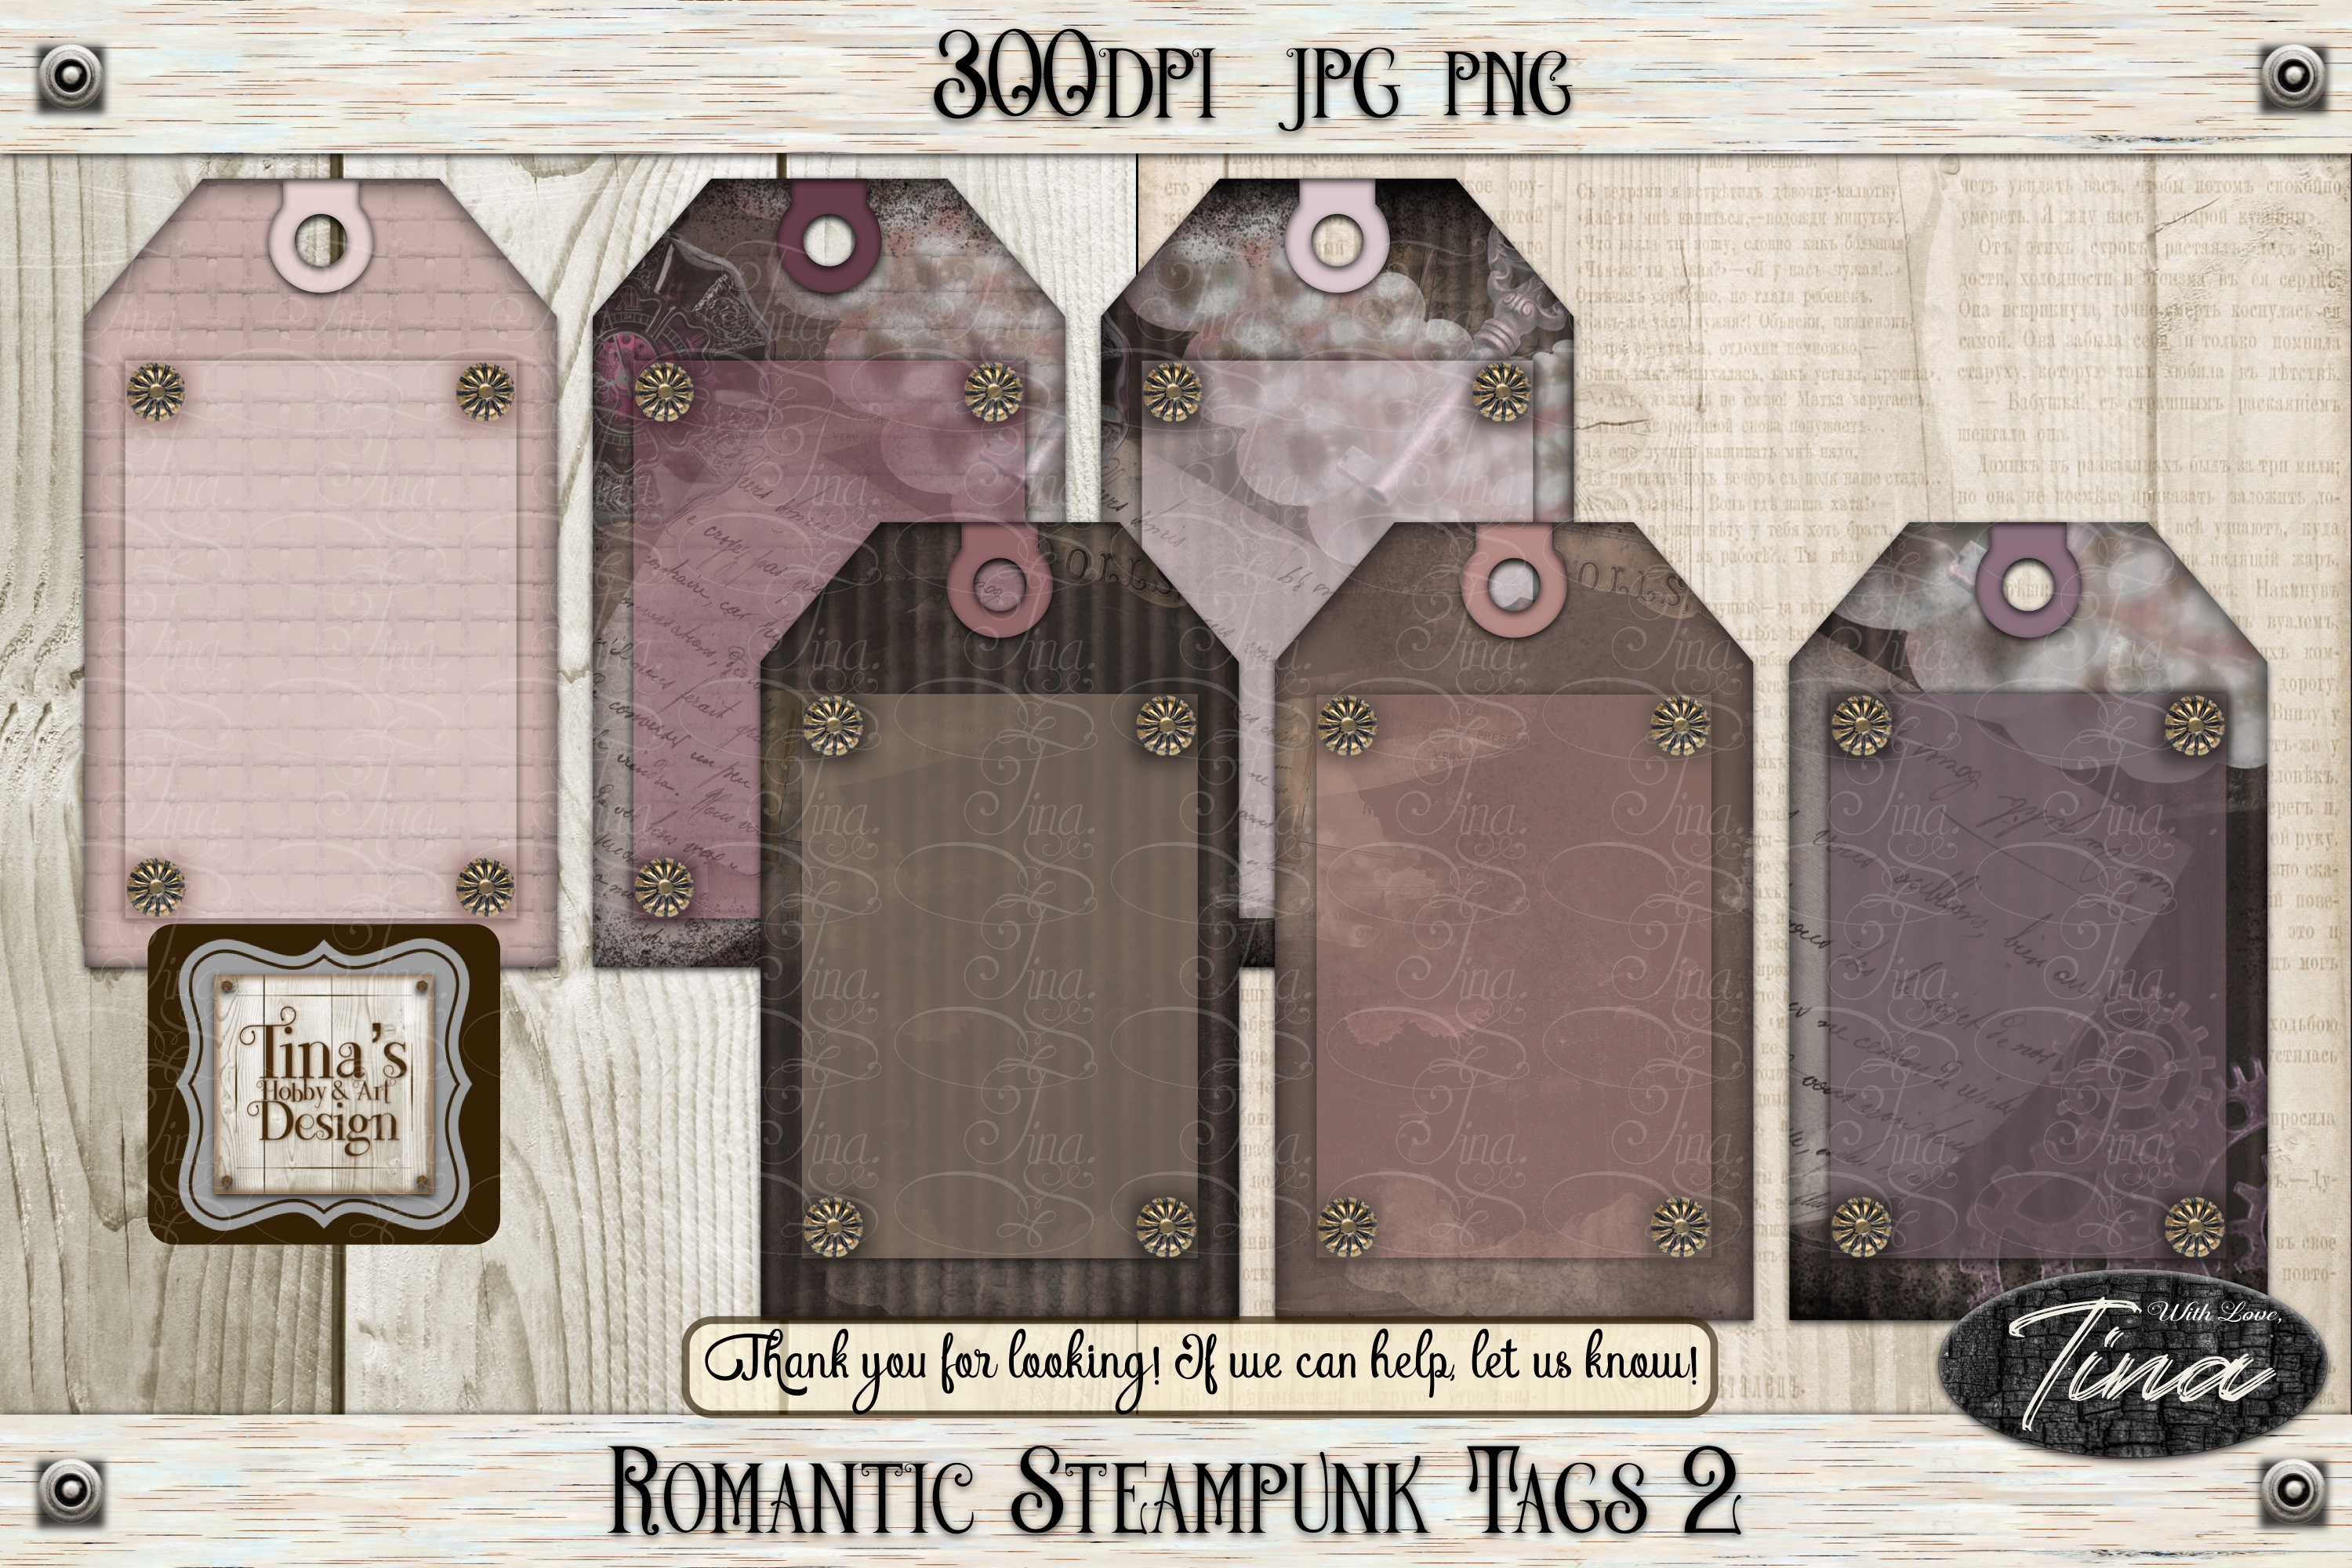 Romantic Steampunk Tags 3 Collage Mauve Grunge 101918RST3 example image 9